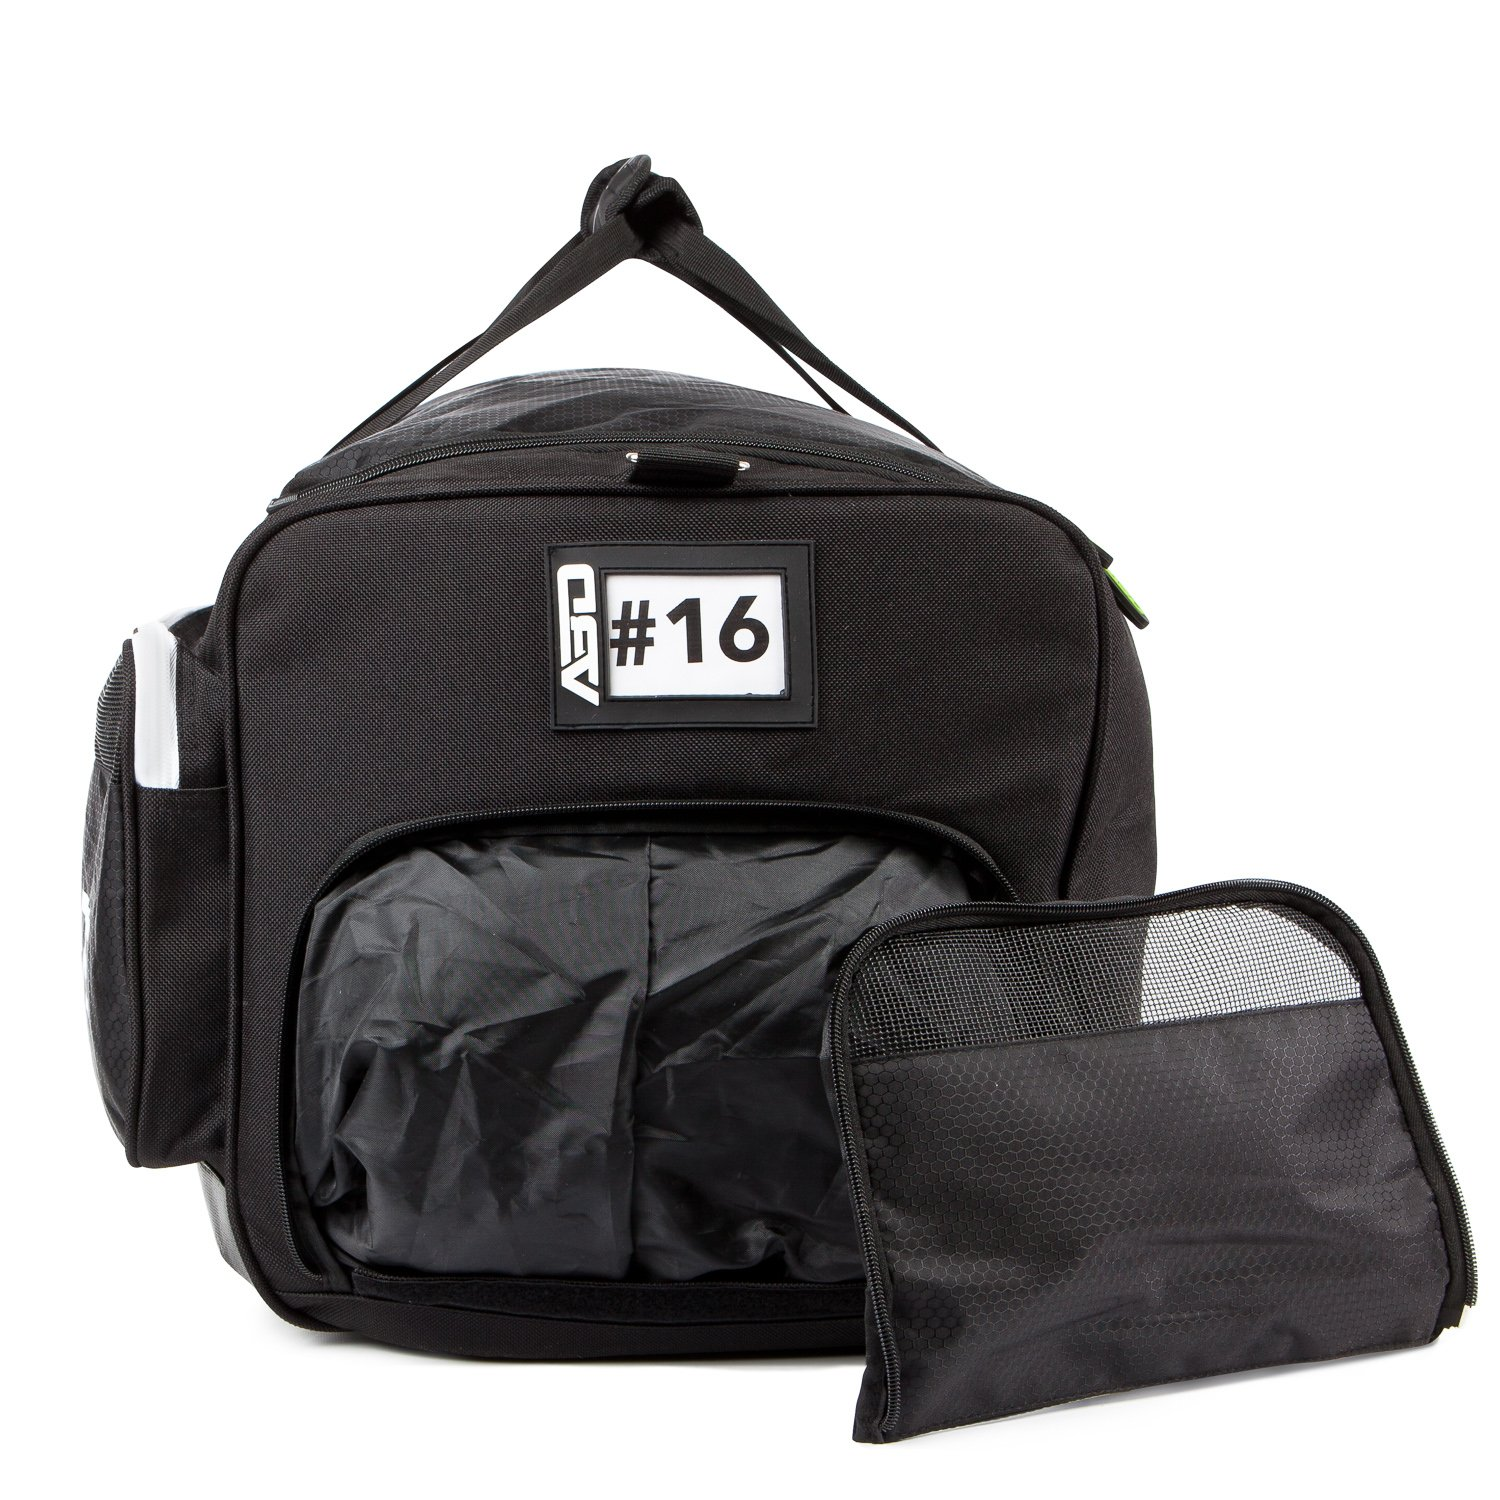 ABD Athletes Multipurpose Duffel Bag With 7 Sections For Overnight Travel Gym Best Sports